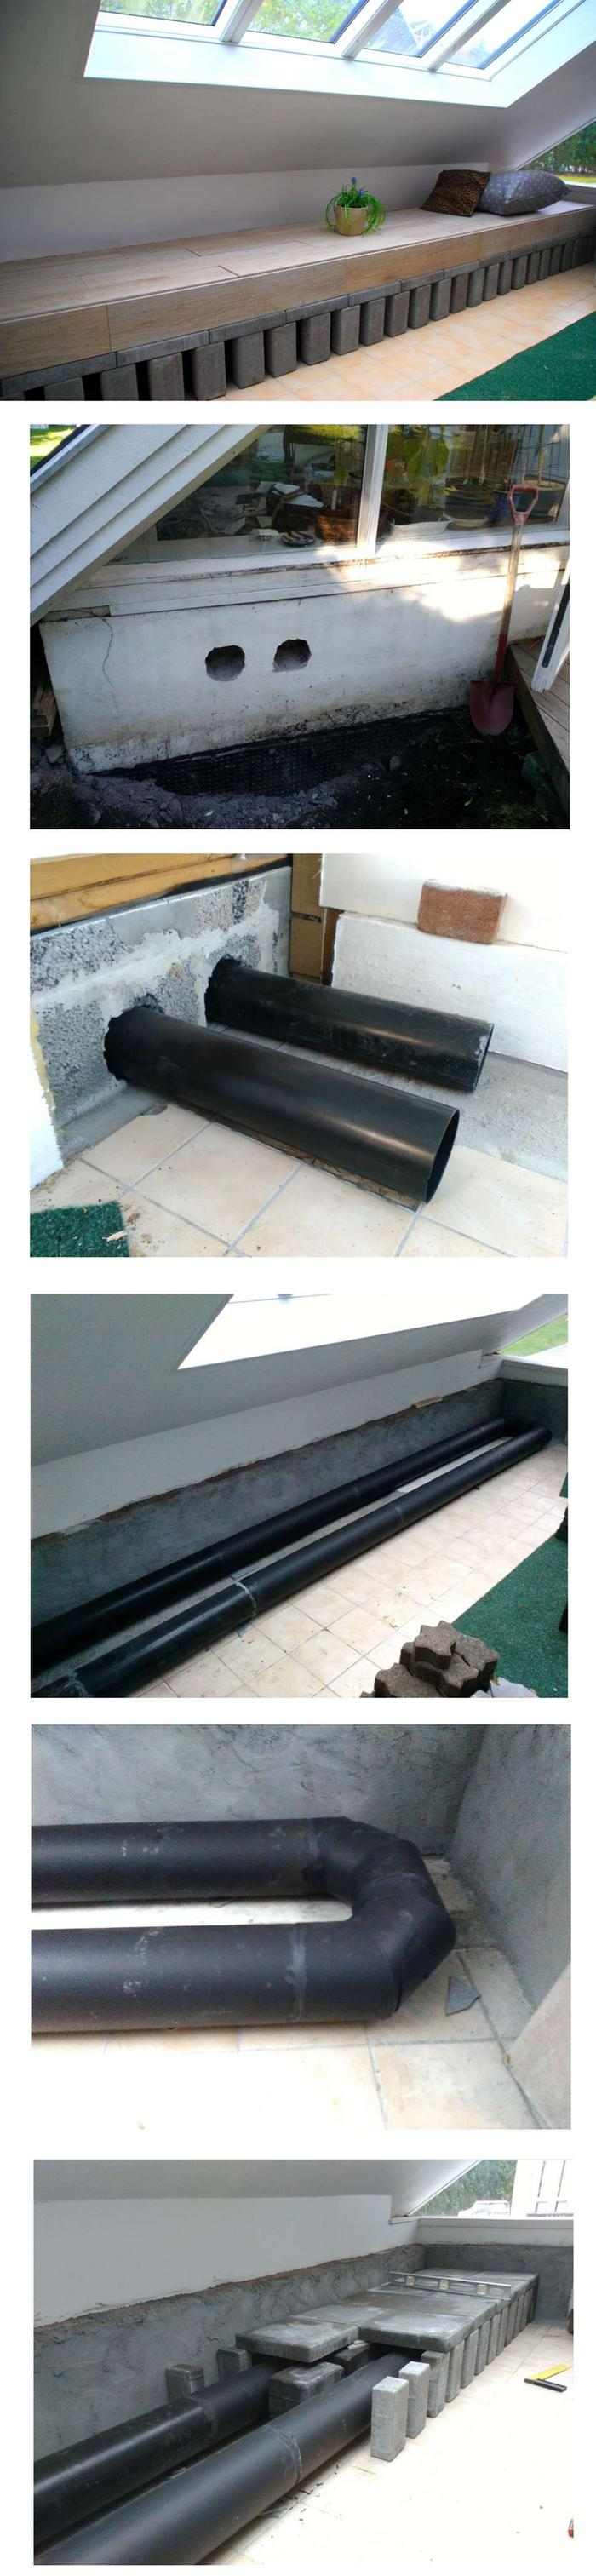 Here is the bench with 1500 kg of mass and the duct beneath